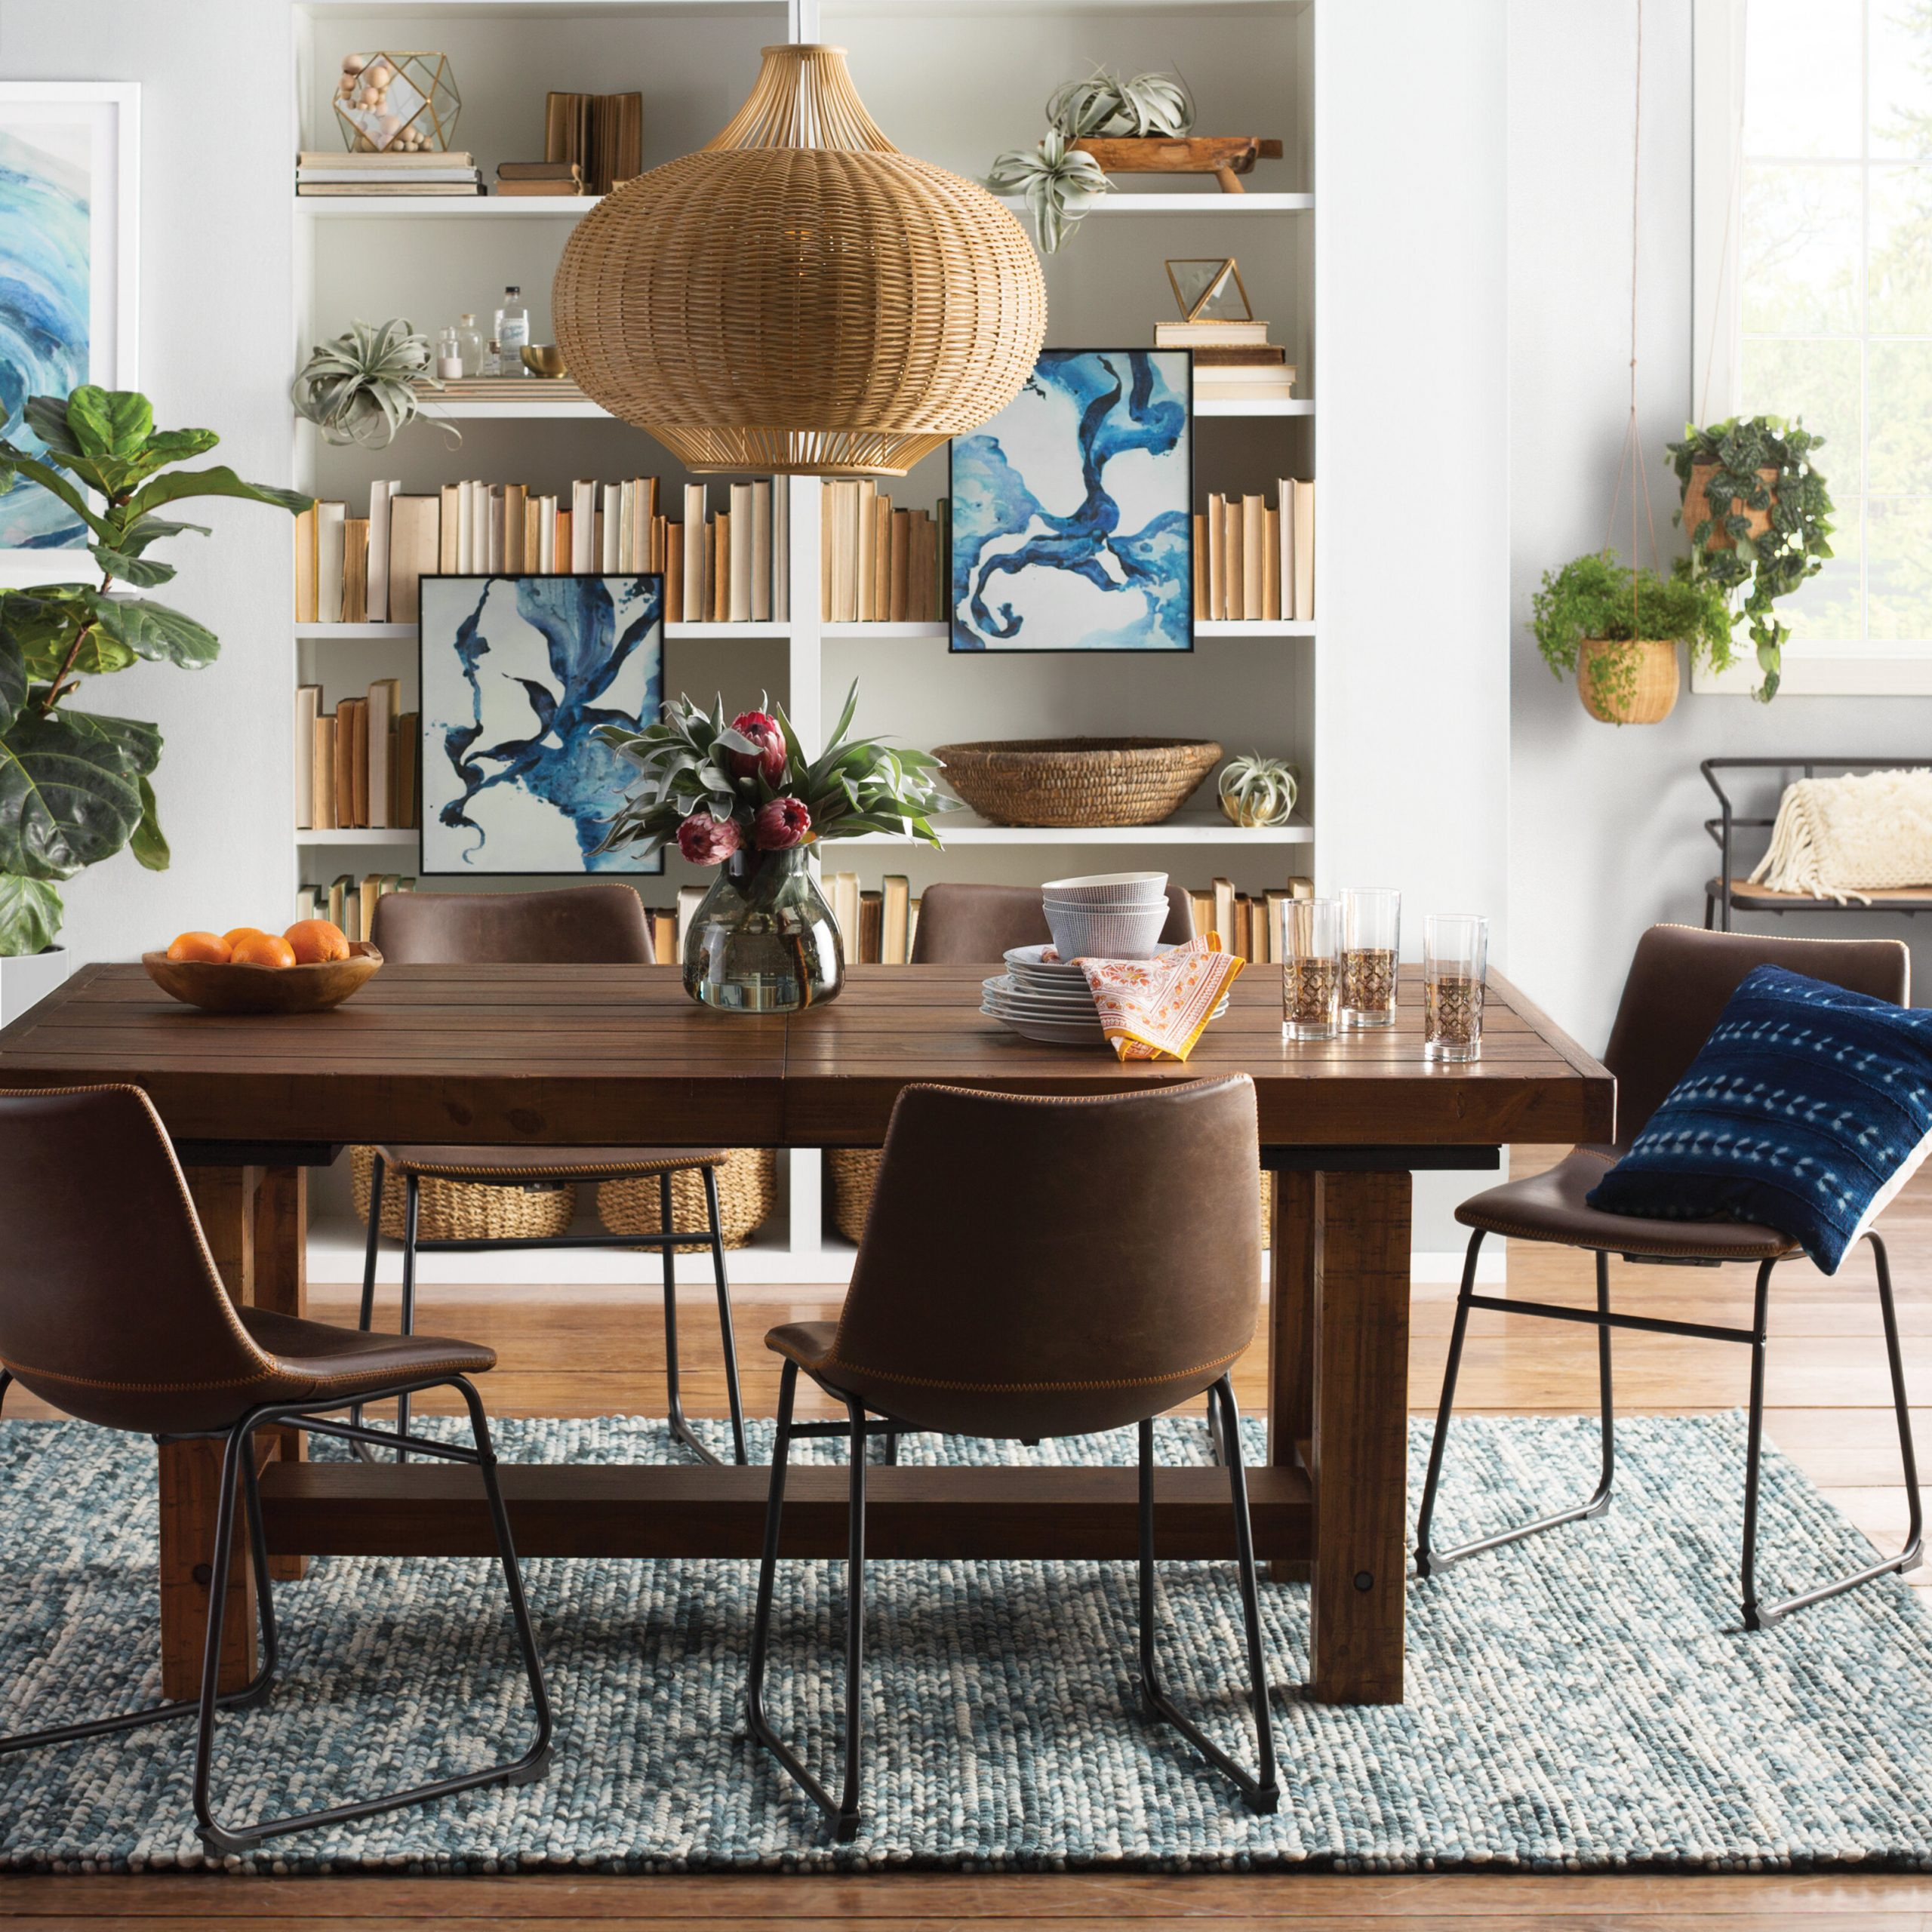 Etolin Extendable Dining Table within Well-known Christie Round Marble Dining Tables